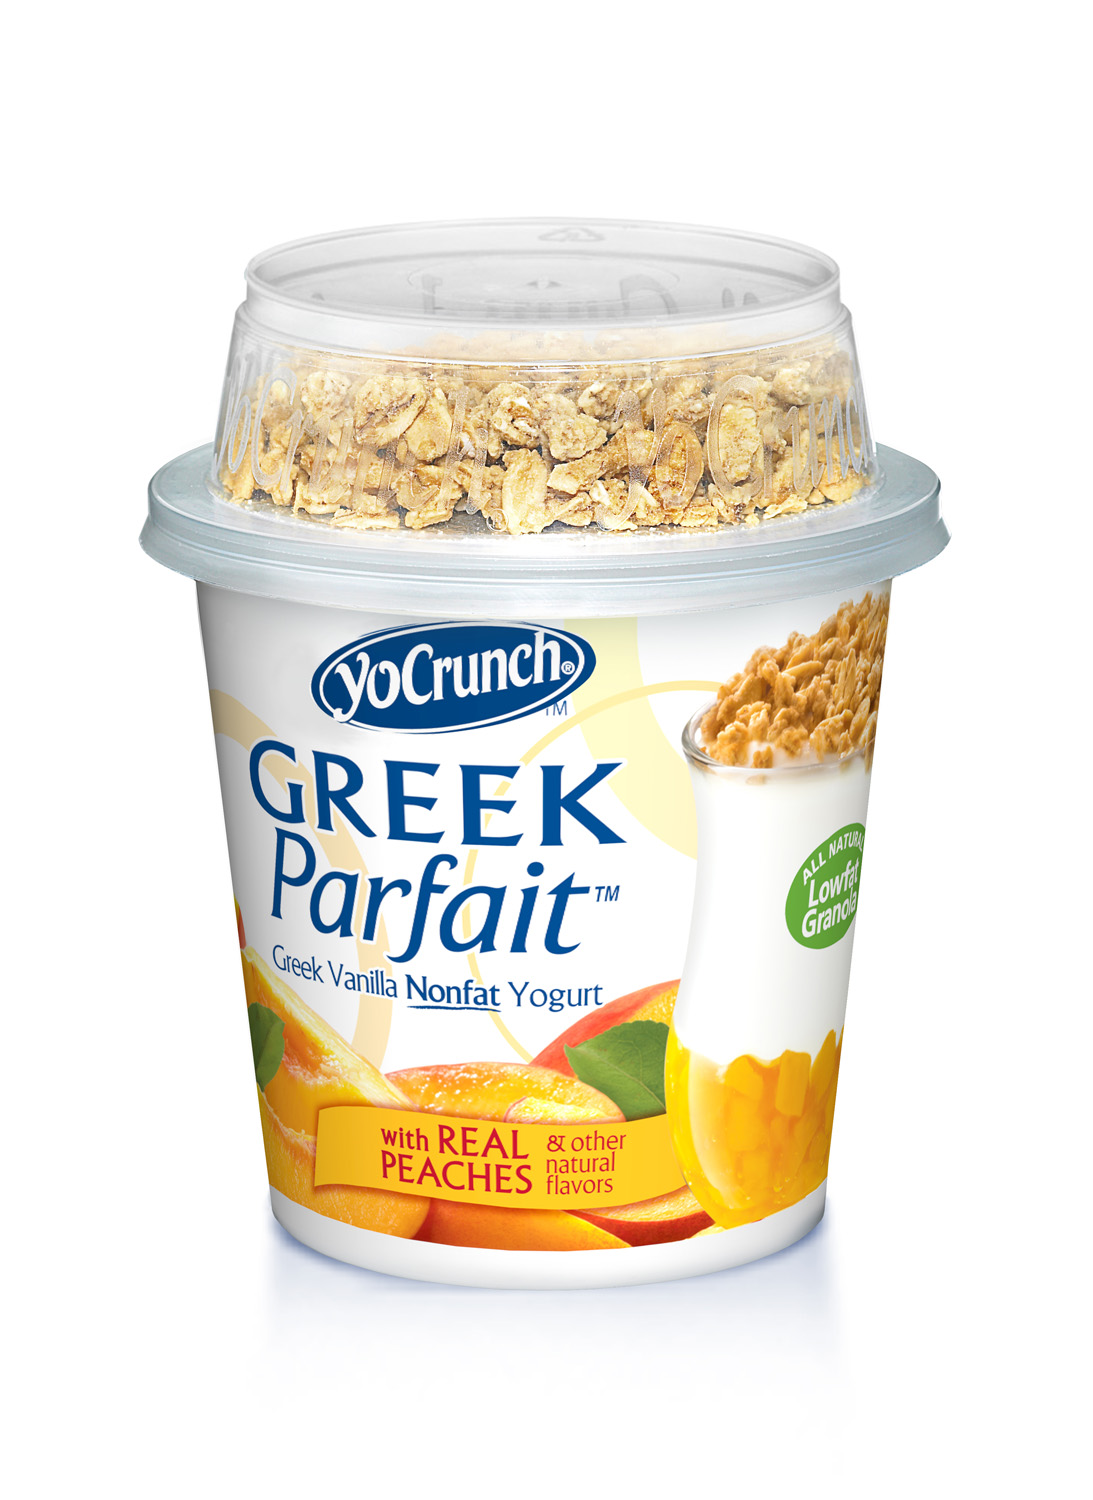 Greek Parfait - Peach